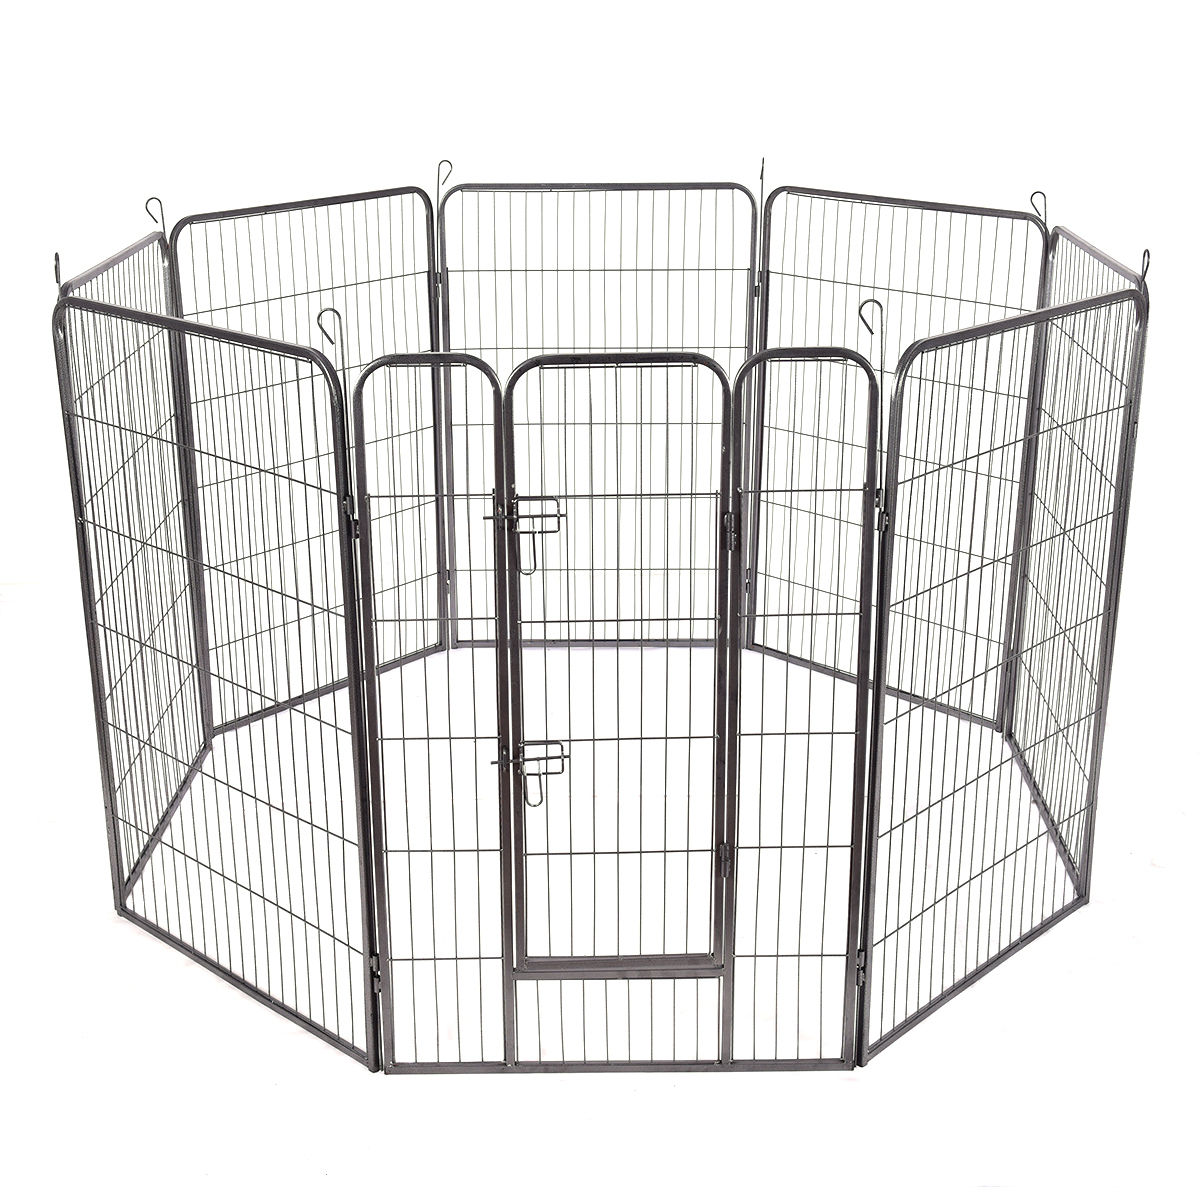 Gymax 48'' 8 Panel Pet Puppy Dog Playpen Door Exercise Kennel Fence Metal